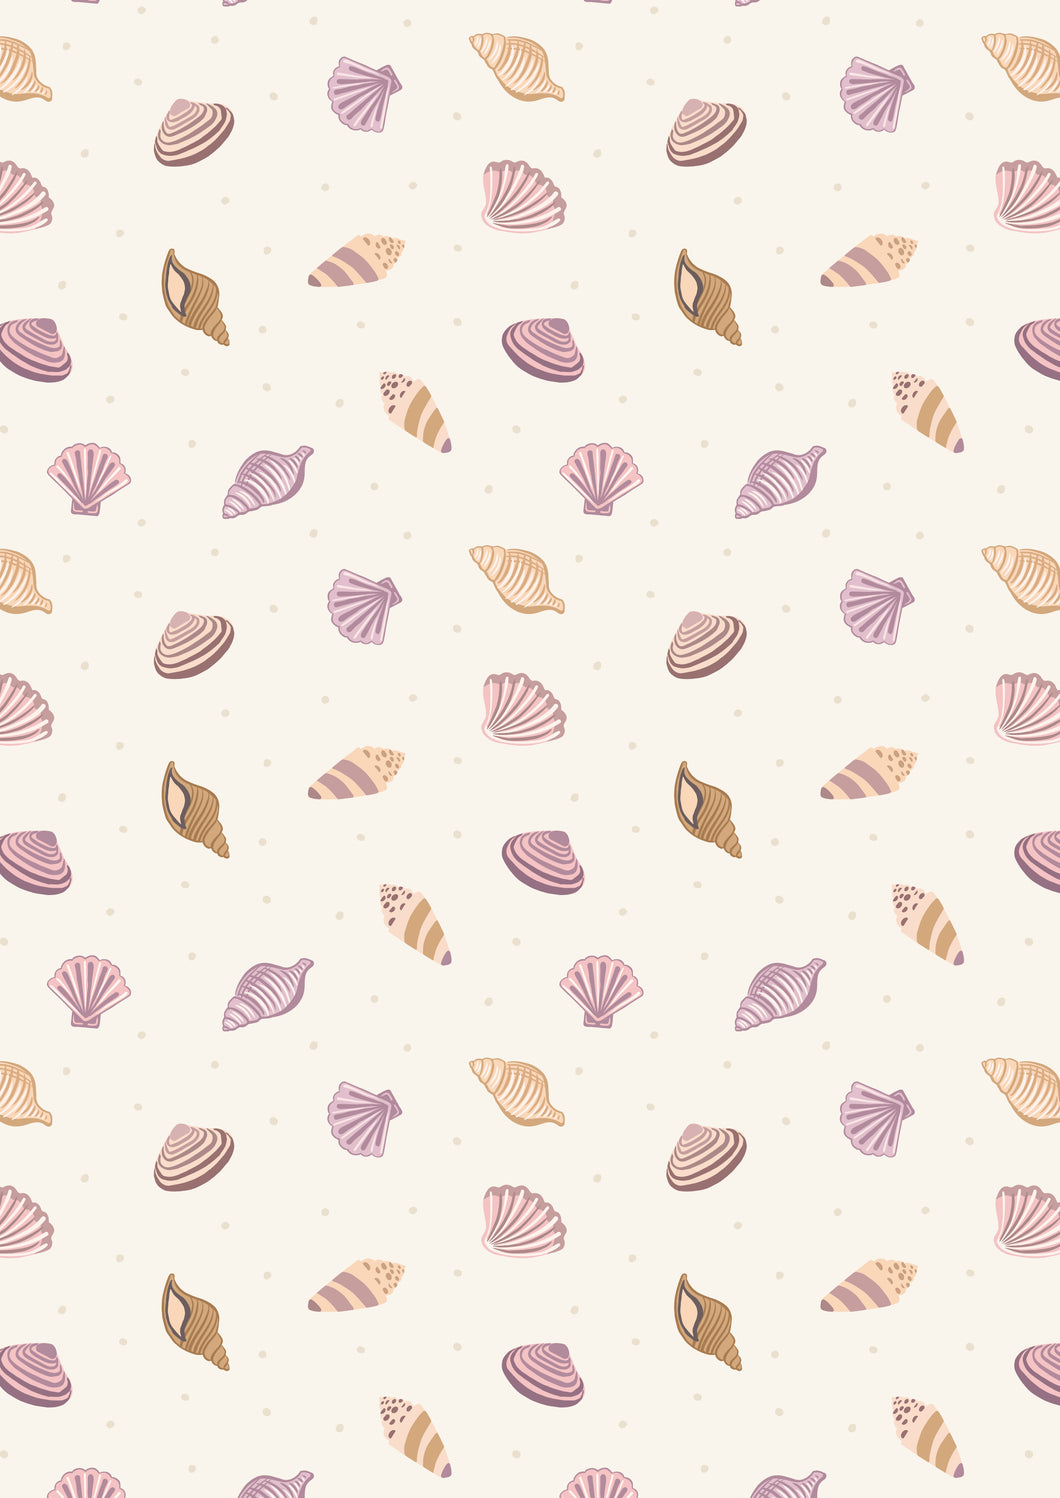 Lewis & Irene - Small Things by the Sea - Cream Shells - 1/2 YARD CUT